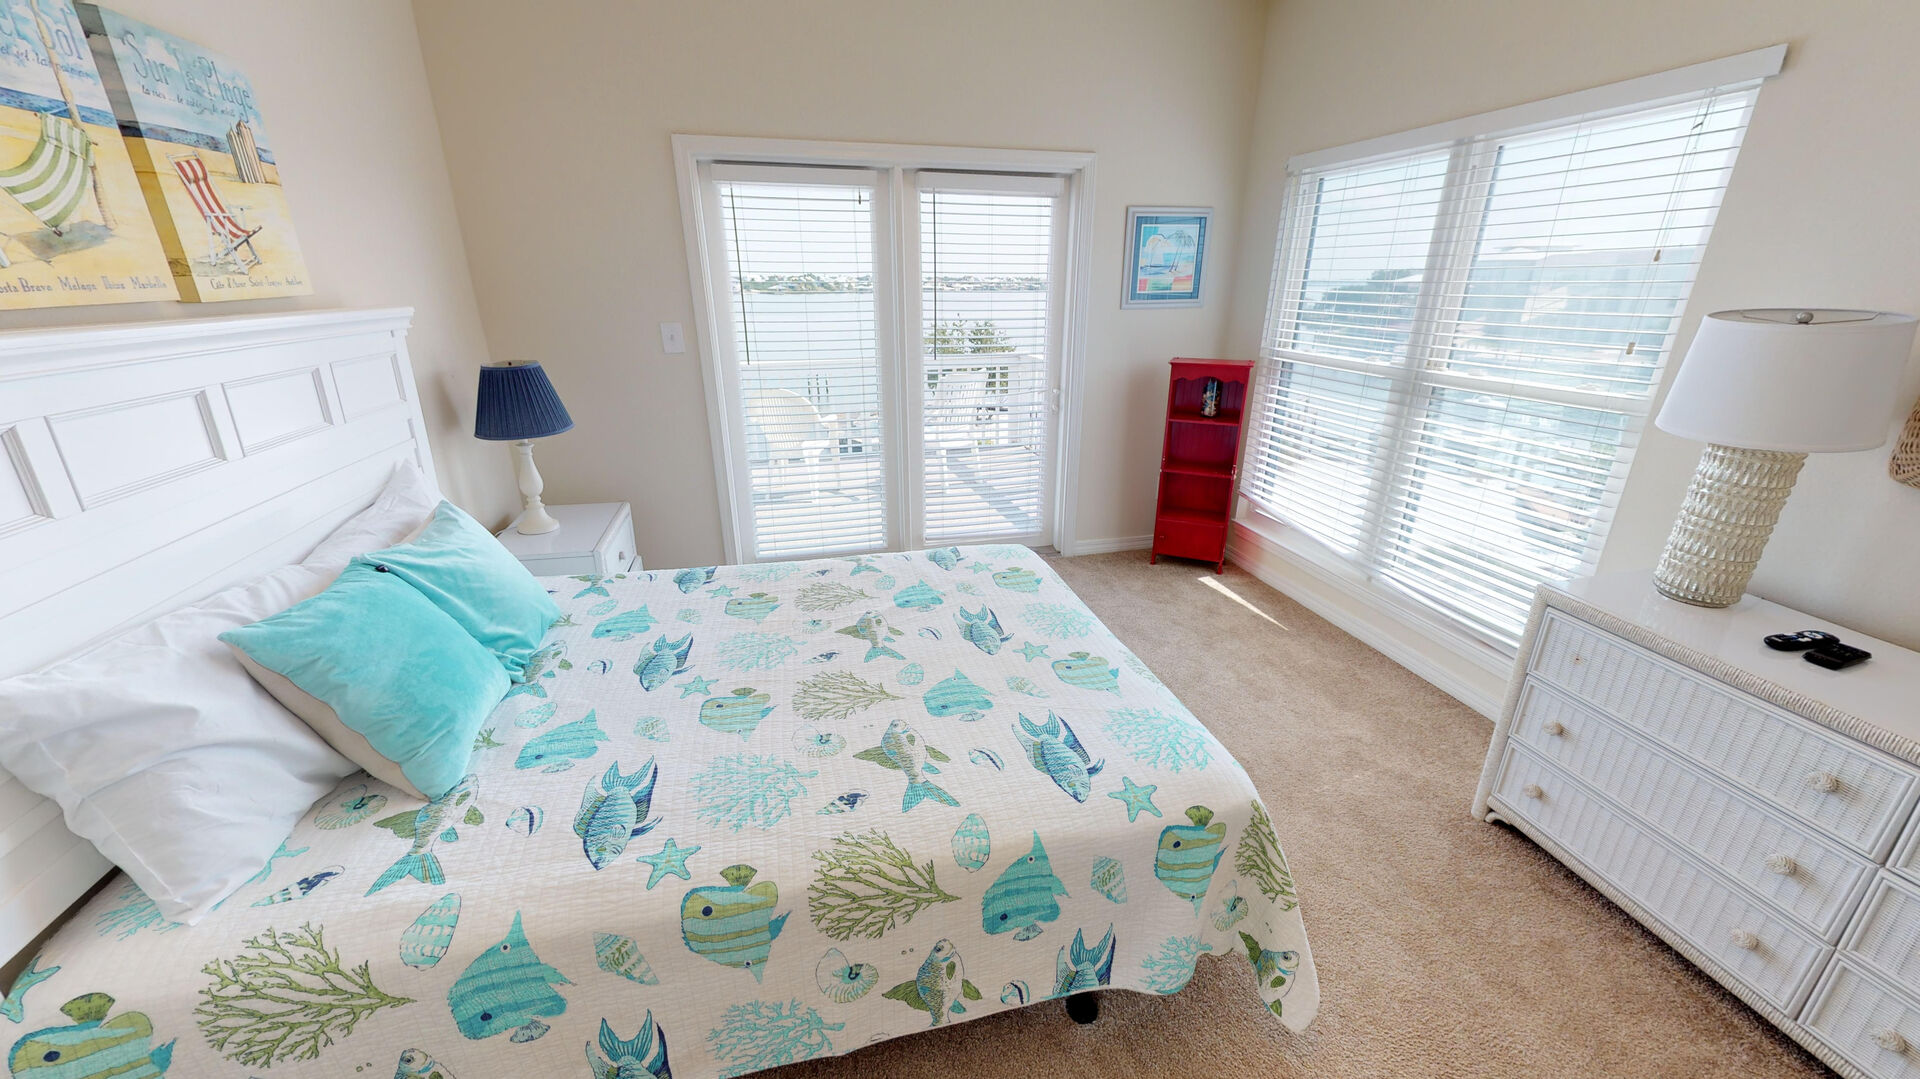 On the 3rd floor, bedroom 2 has a queen bed and a private deck